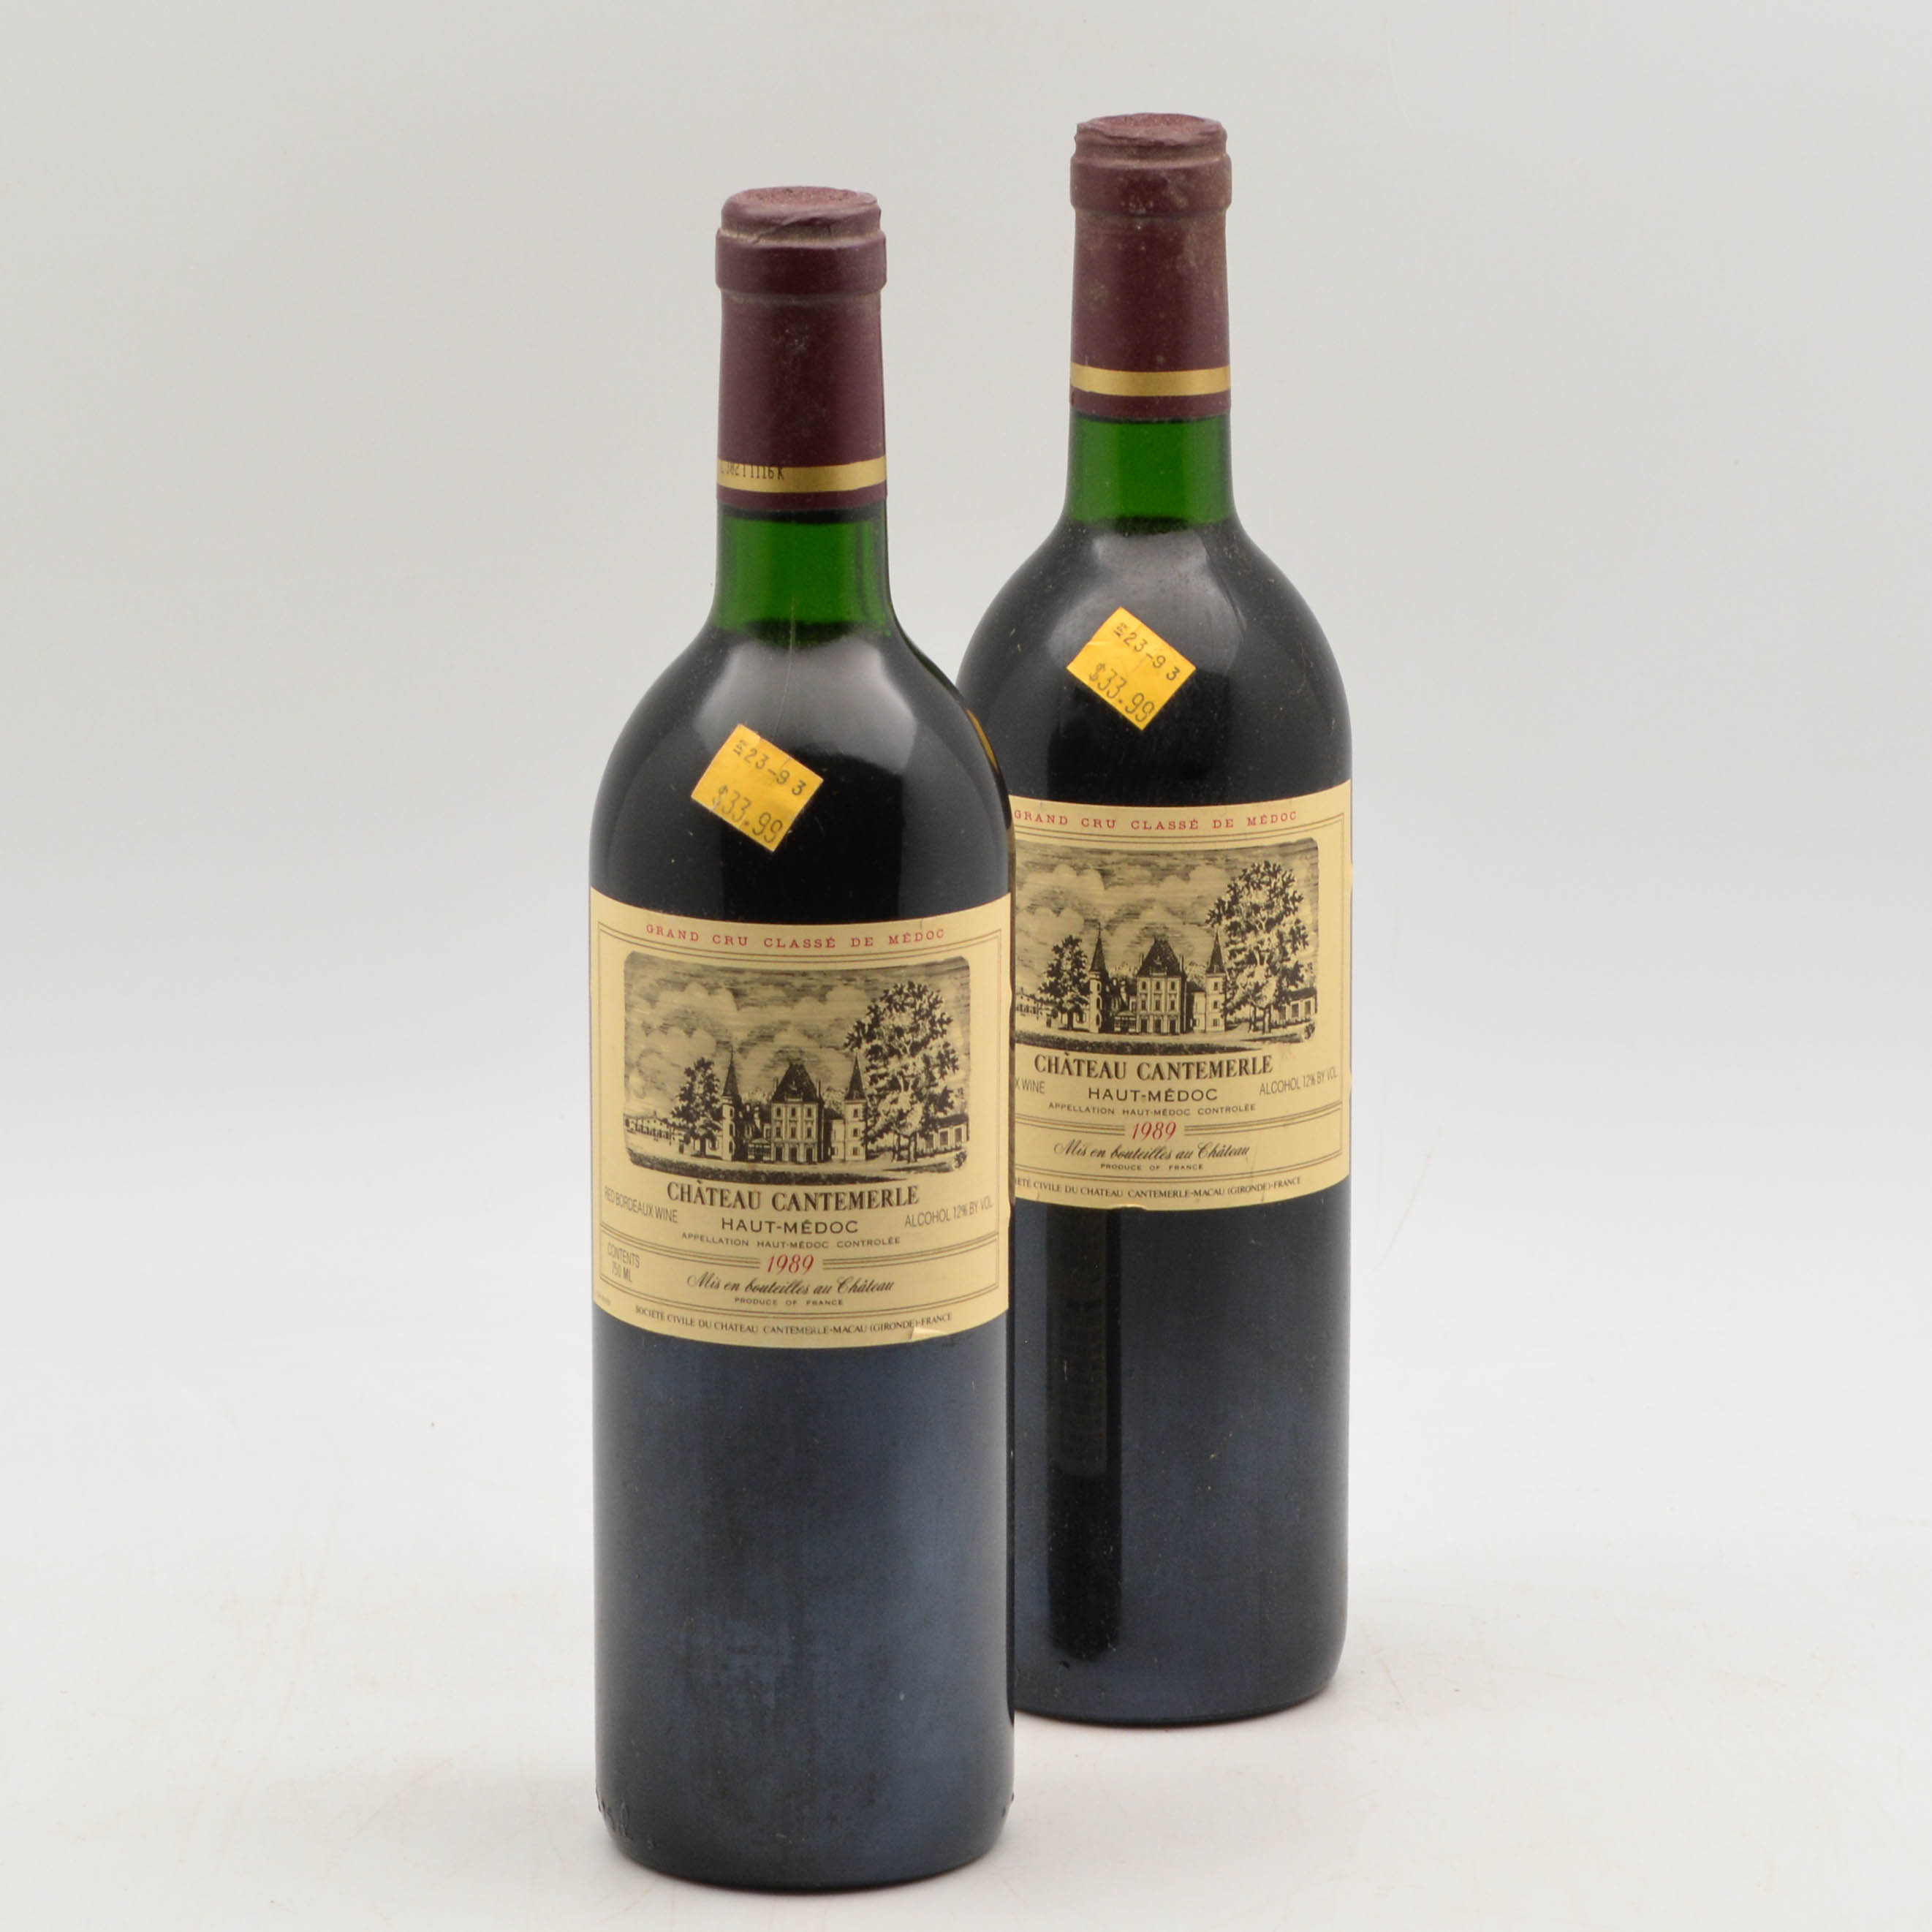 Chateau Cantemerle 1989, 2 bottles (Lot 1091, Estimate: $100-150)